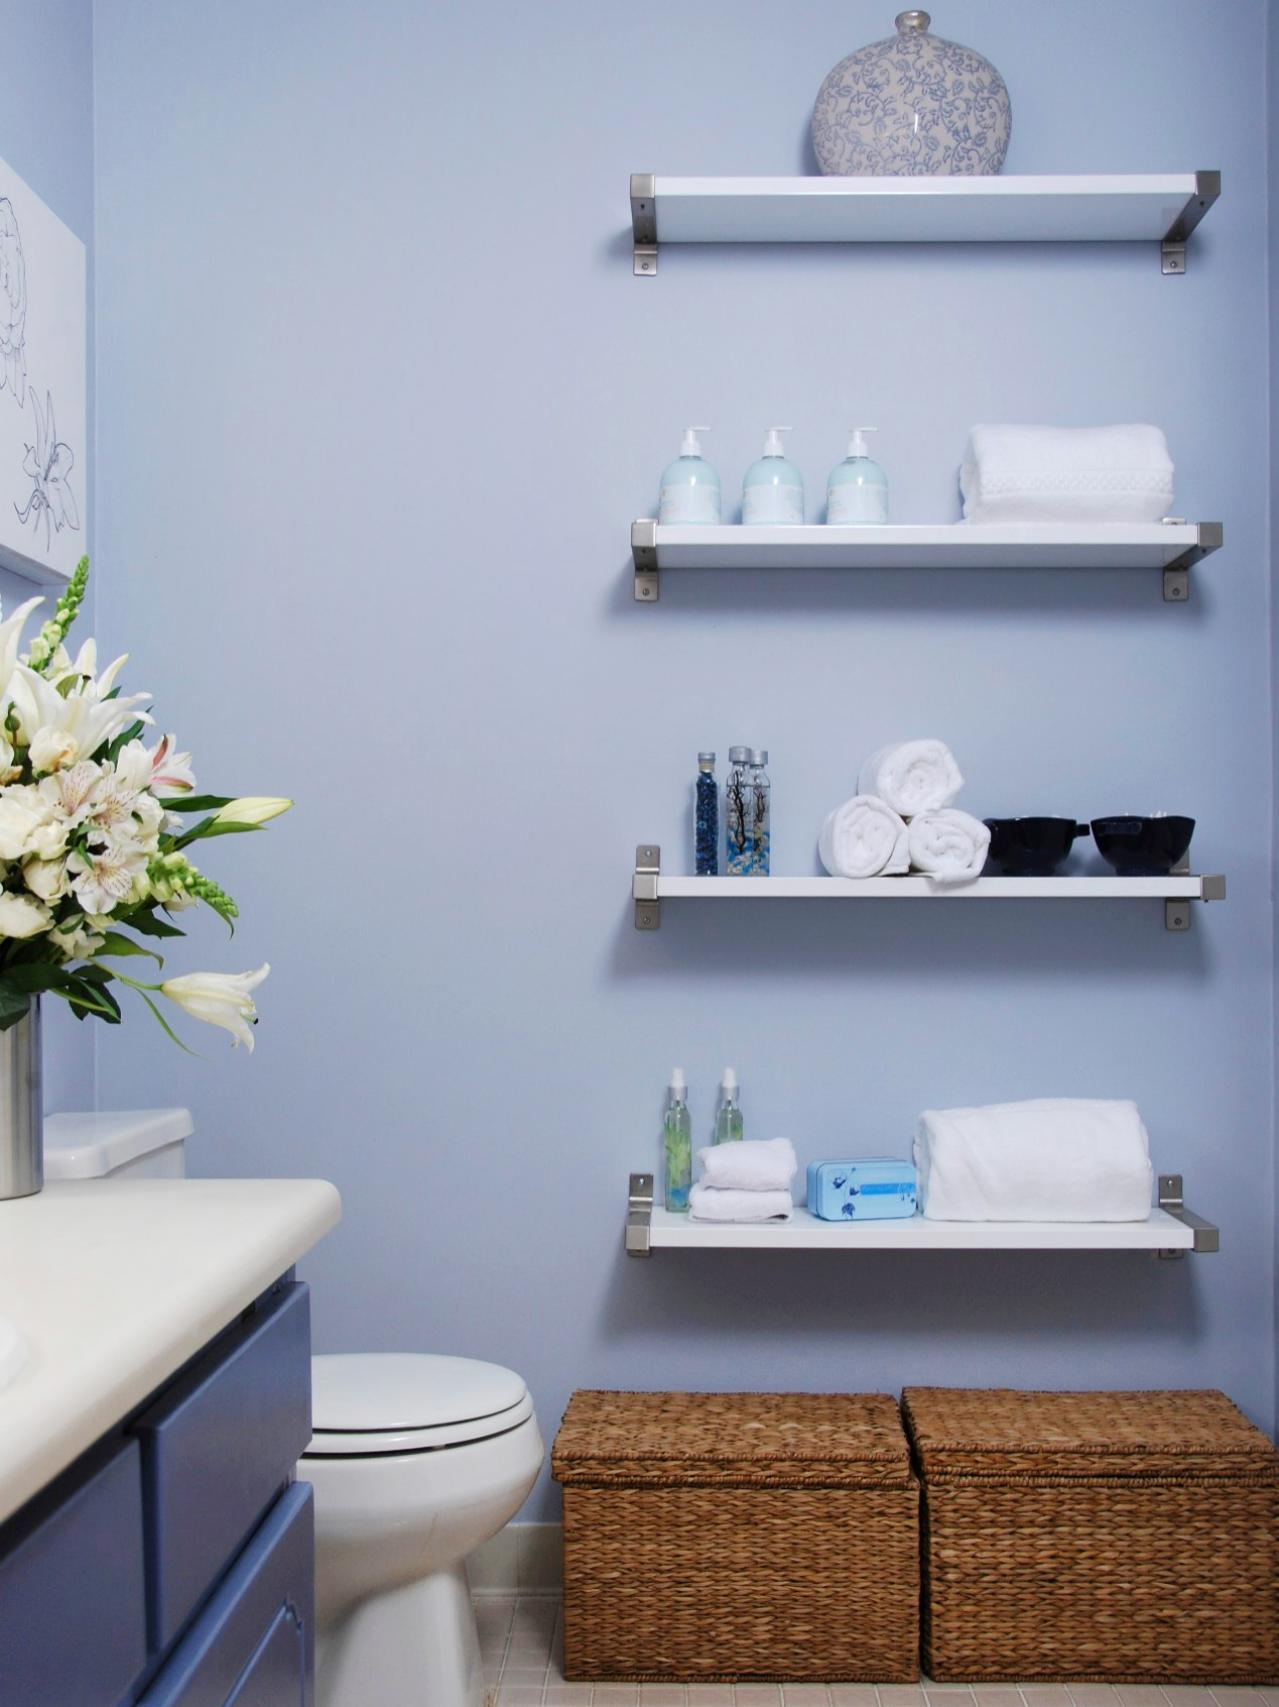 ways decorate with floating shelves decorating small bathroom contemporary line blue wall chrome bath towel shelf thick oak shoe rack plans stainless shelving material rectangle